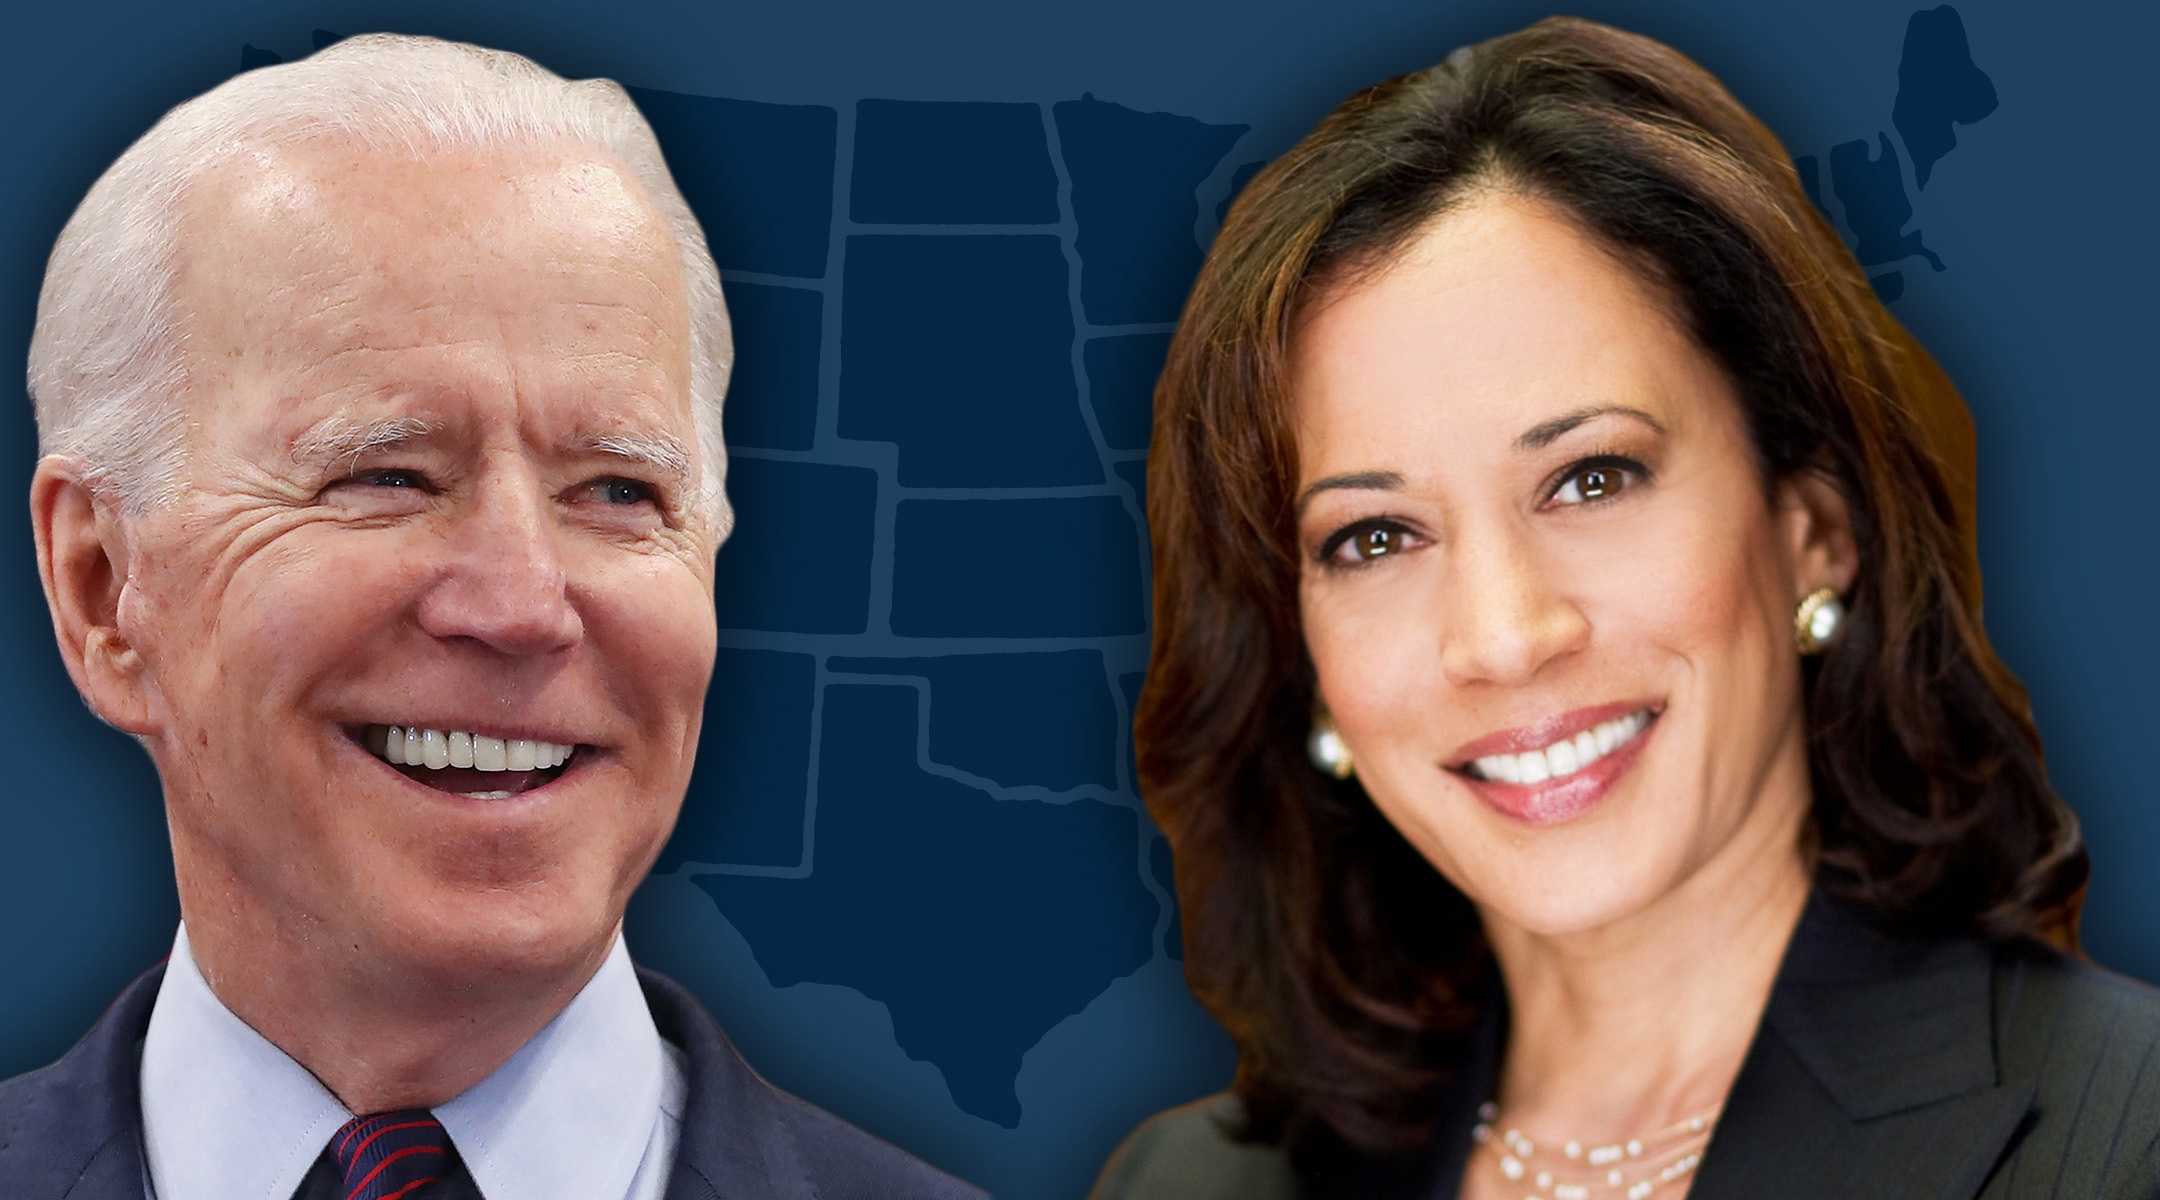 Kamala Harris is Joe Biden's VP pick — here's what Jewish voters should know